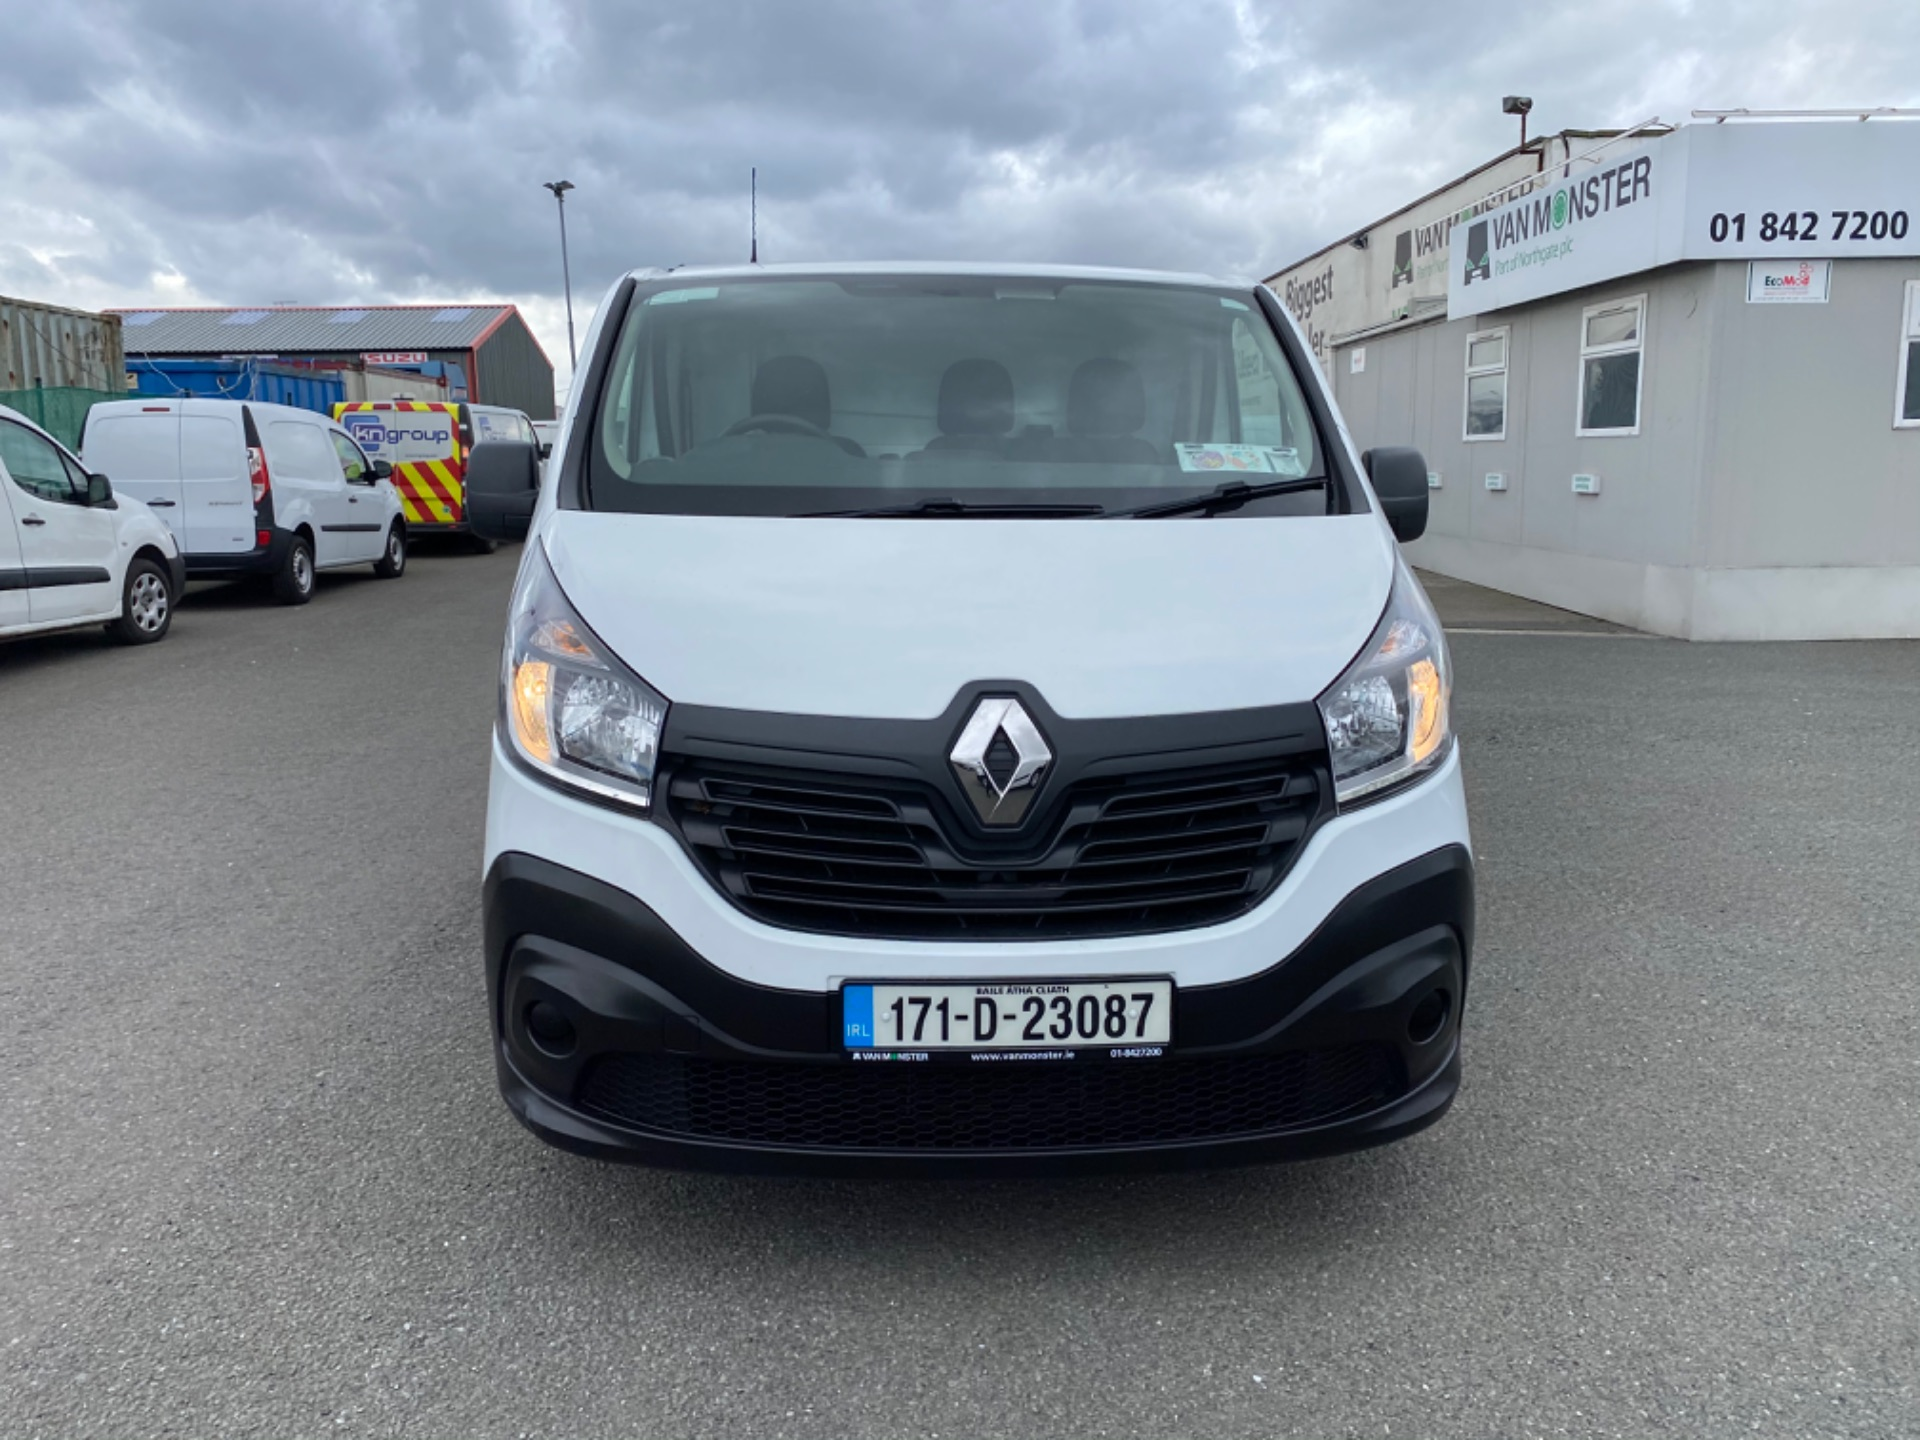 2017 Renault Trafic LL29 DCI 120 Business 3DR (171D23087) Image 2